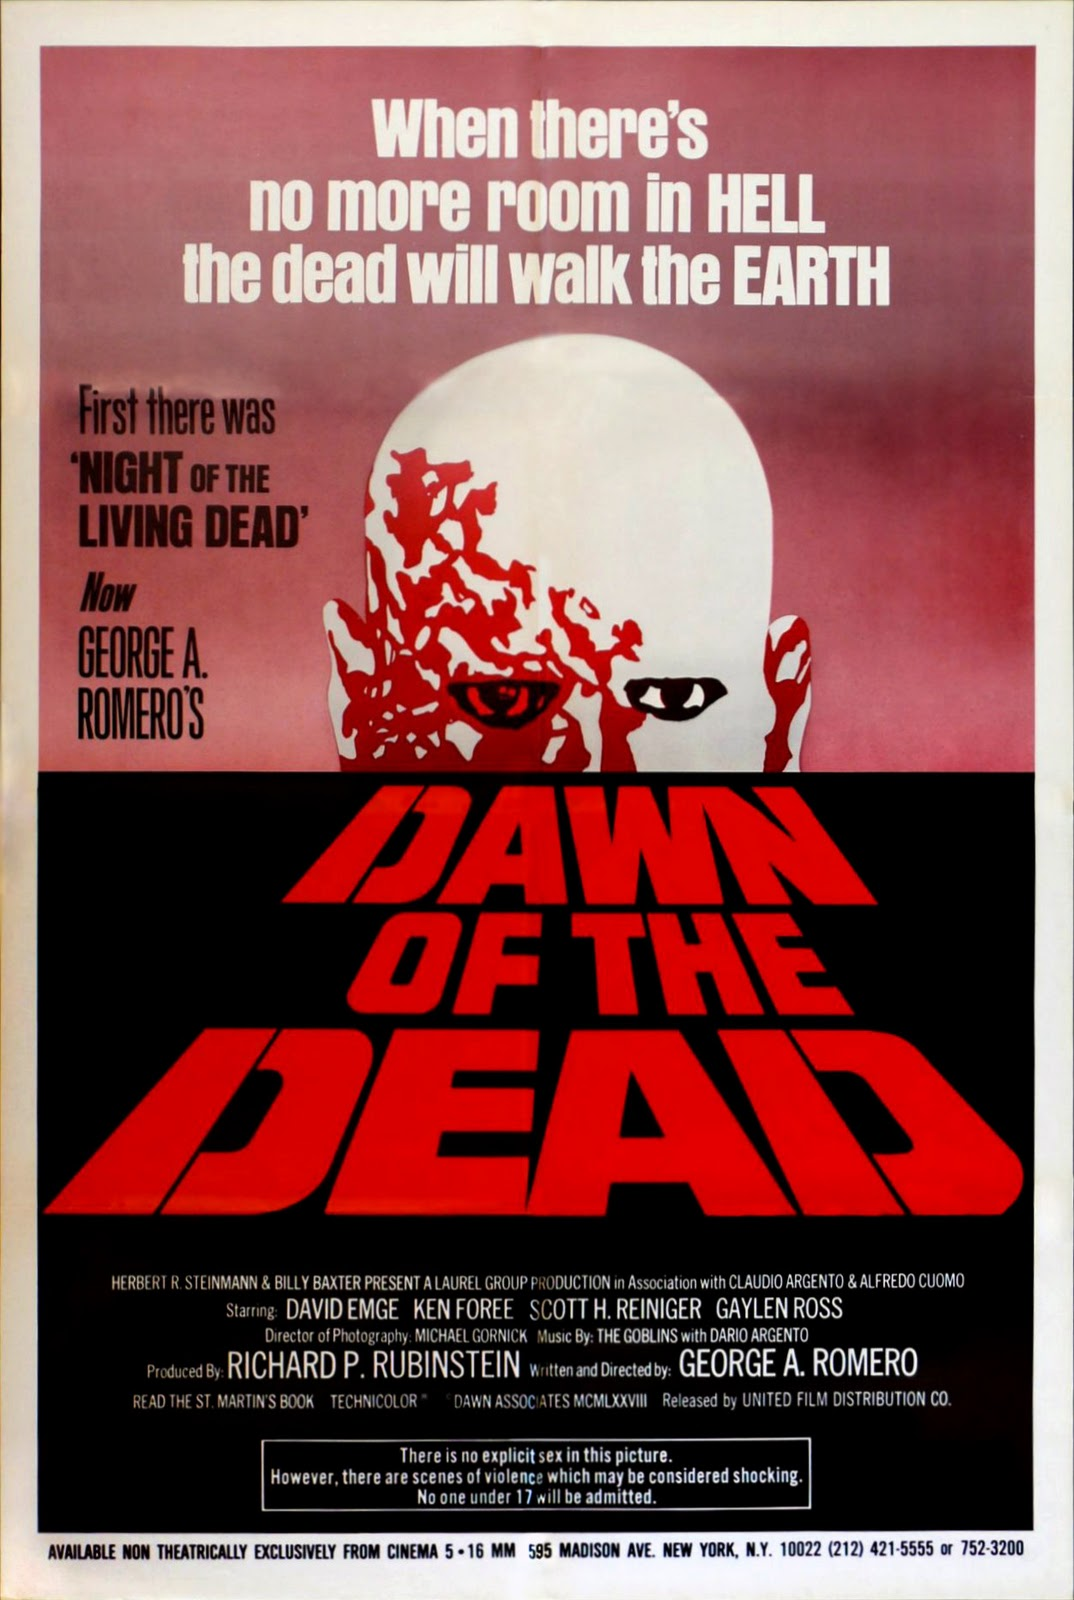 Dawn of the Dead (1978) movie posters - Fonts In Use